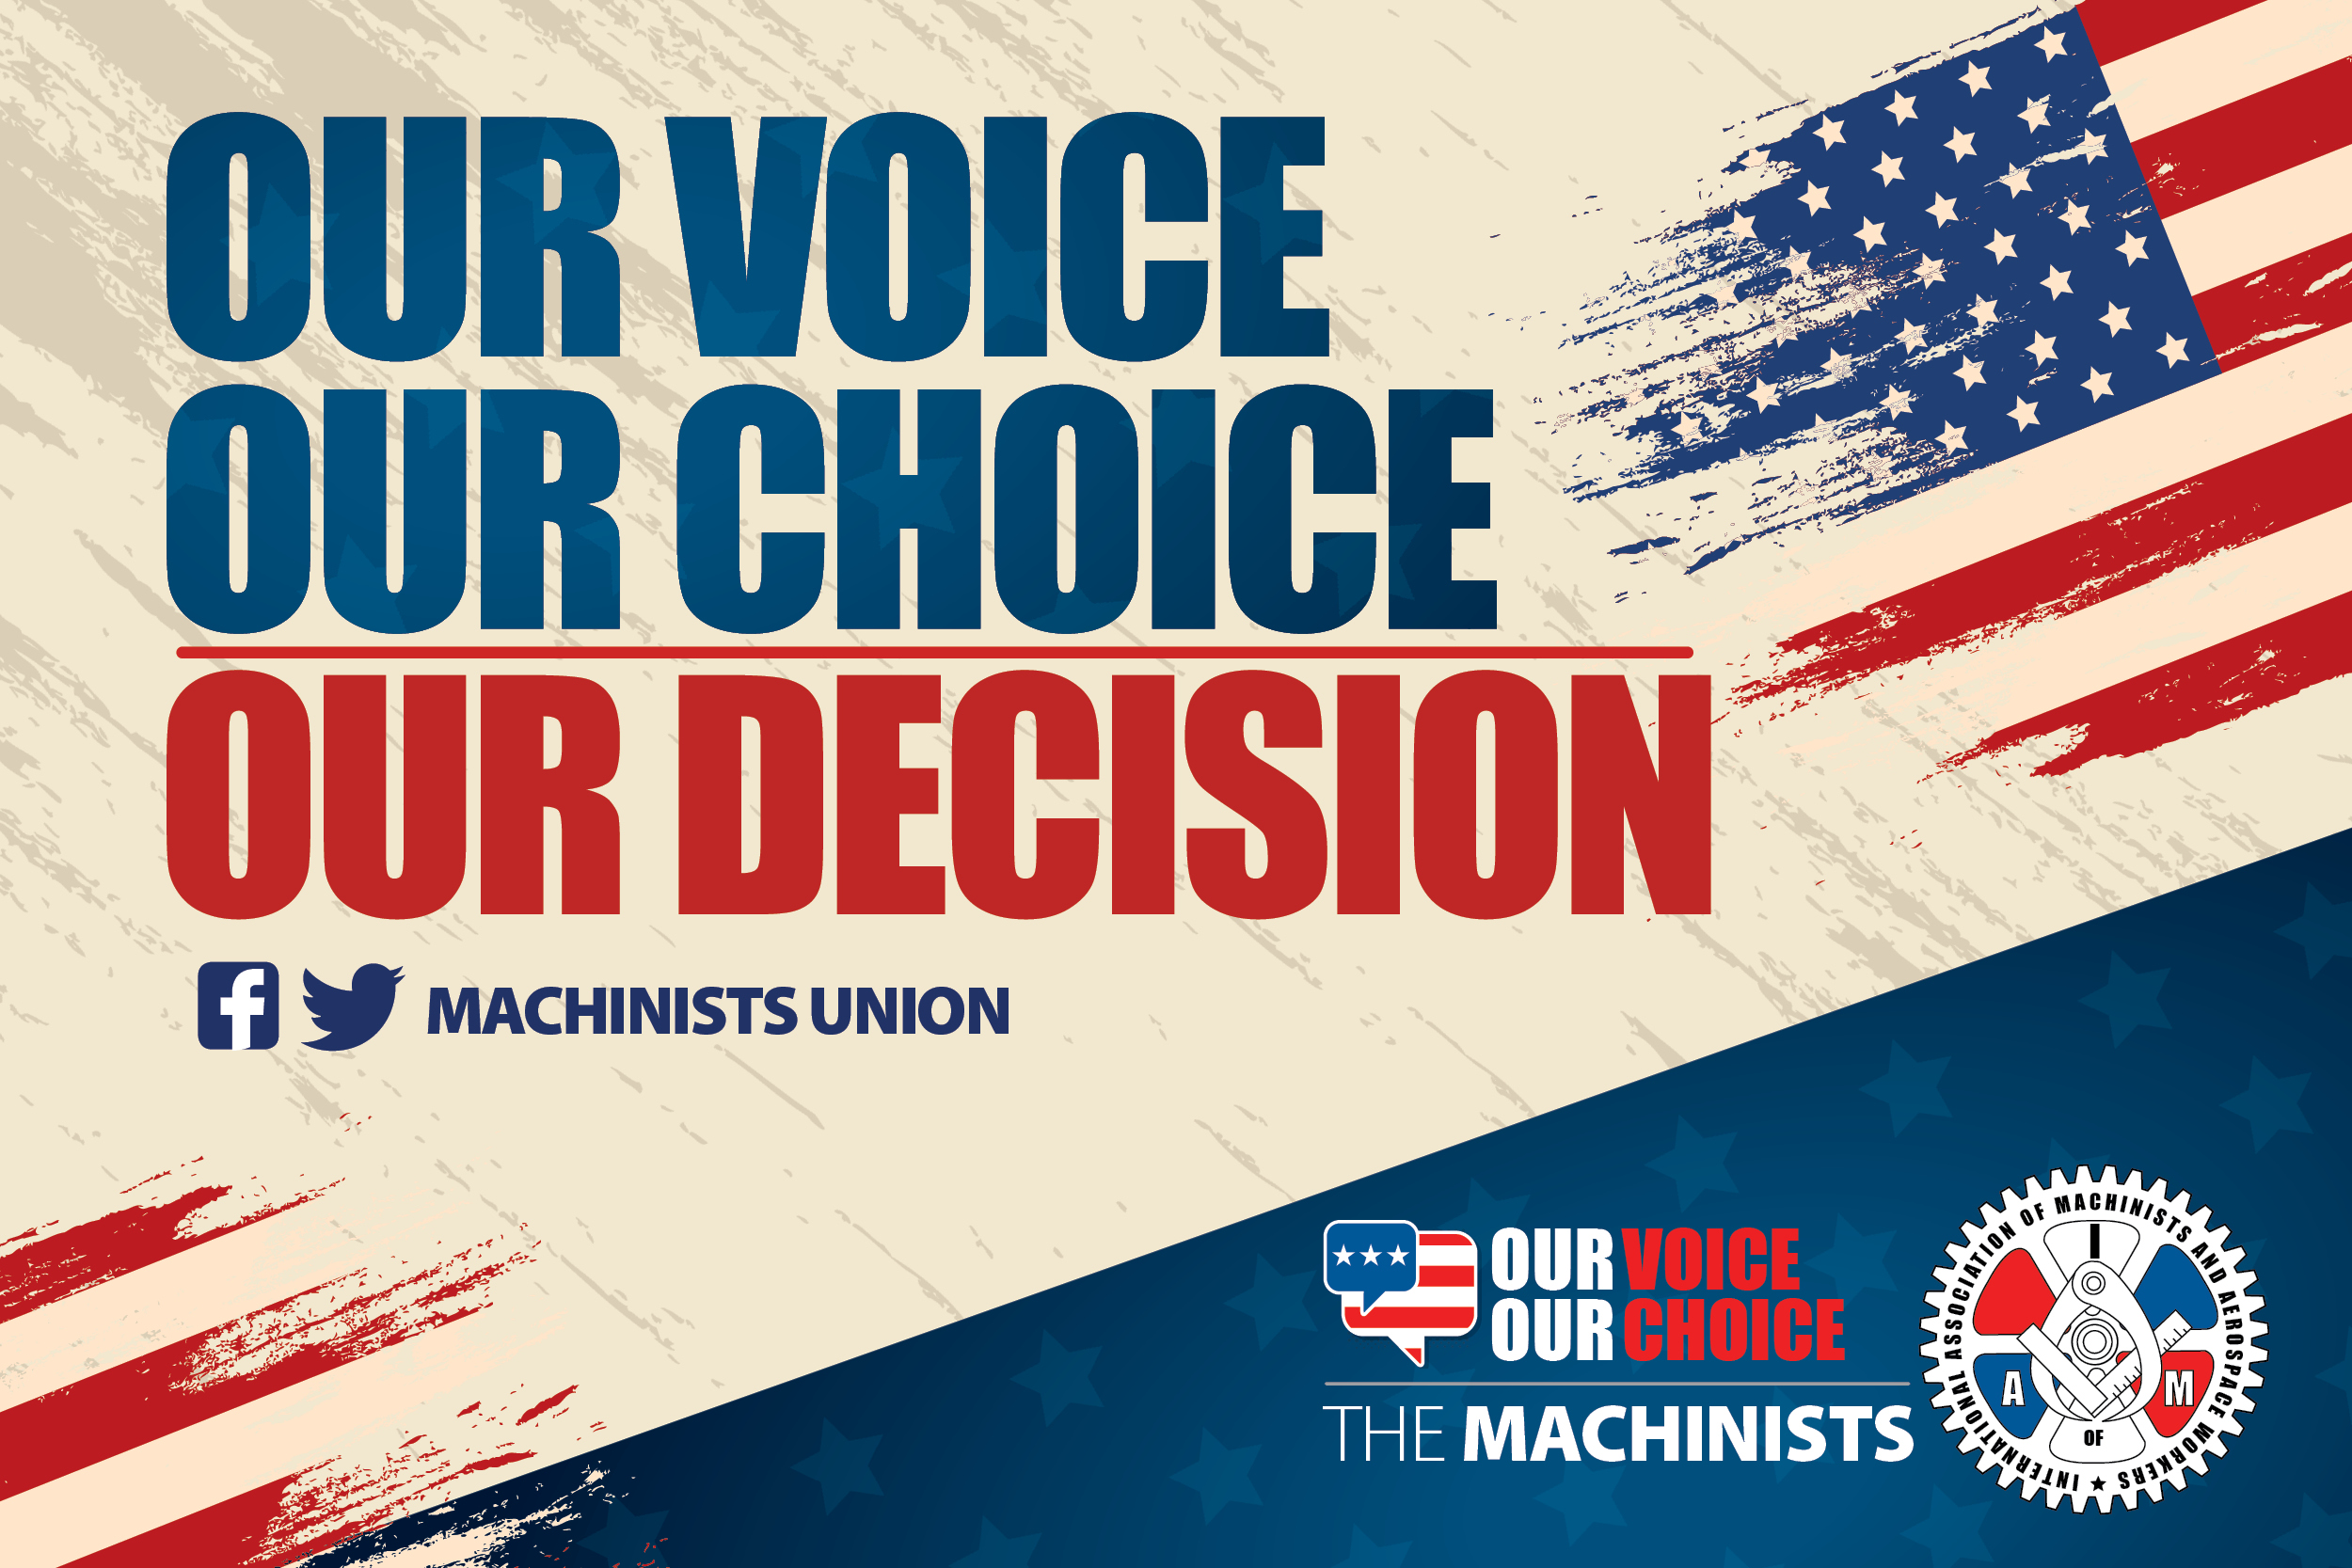 Machinists Union Will Partner with Biden-Harris Administration to Heal Country, Bring Our Jobs Home